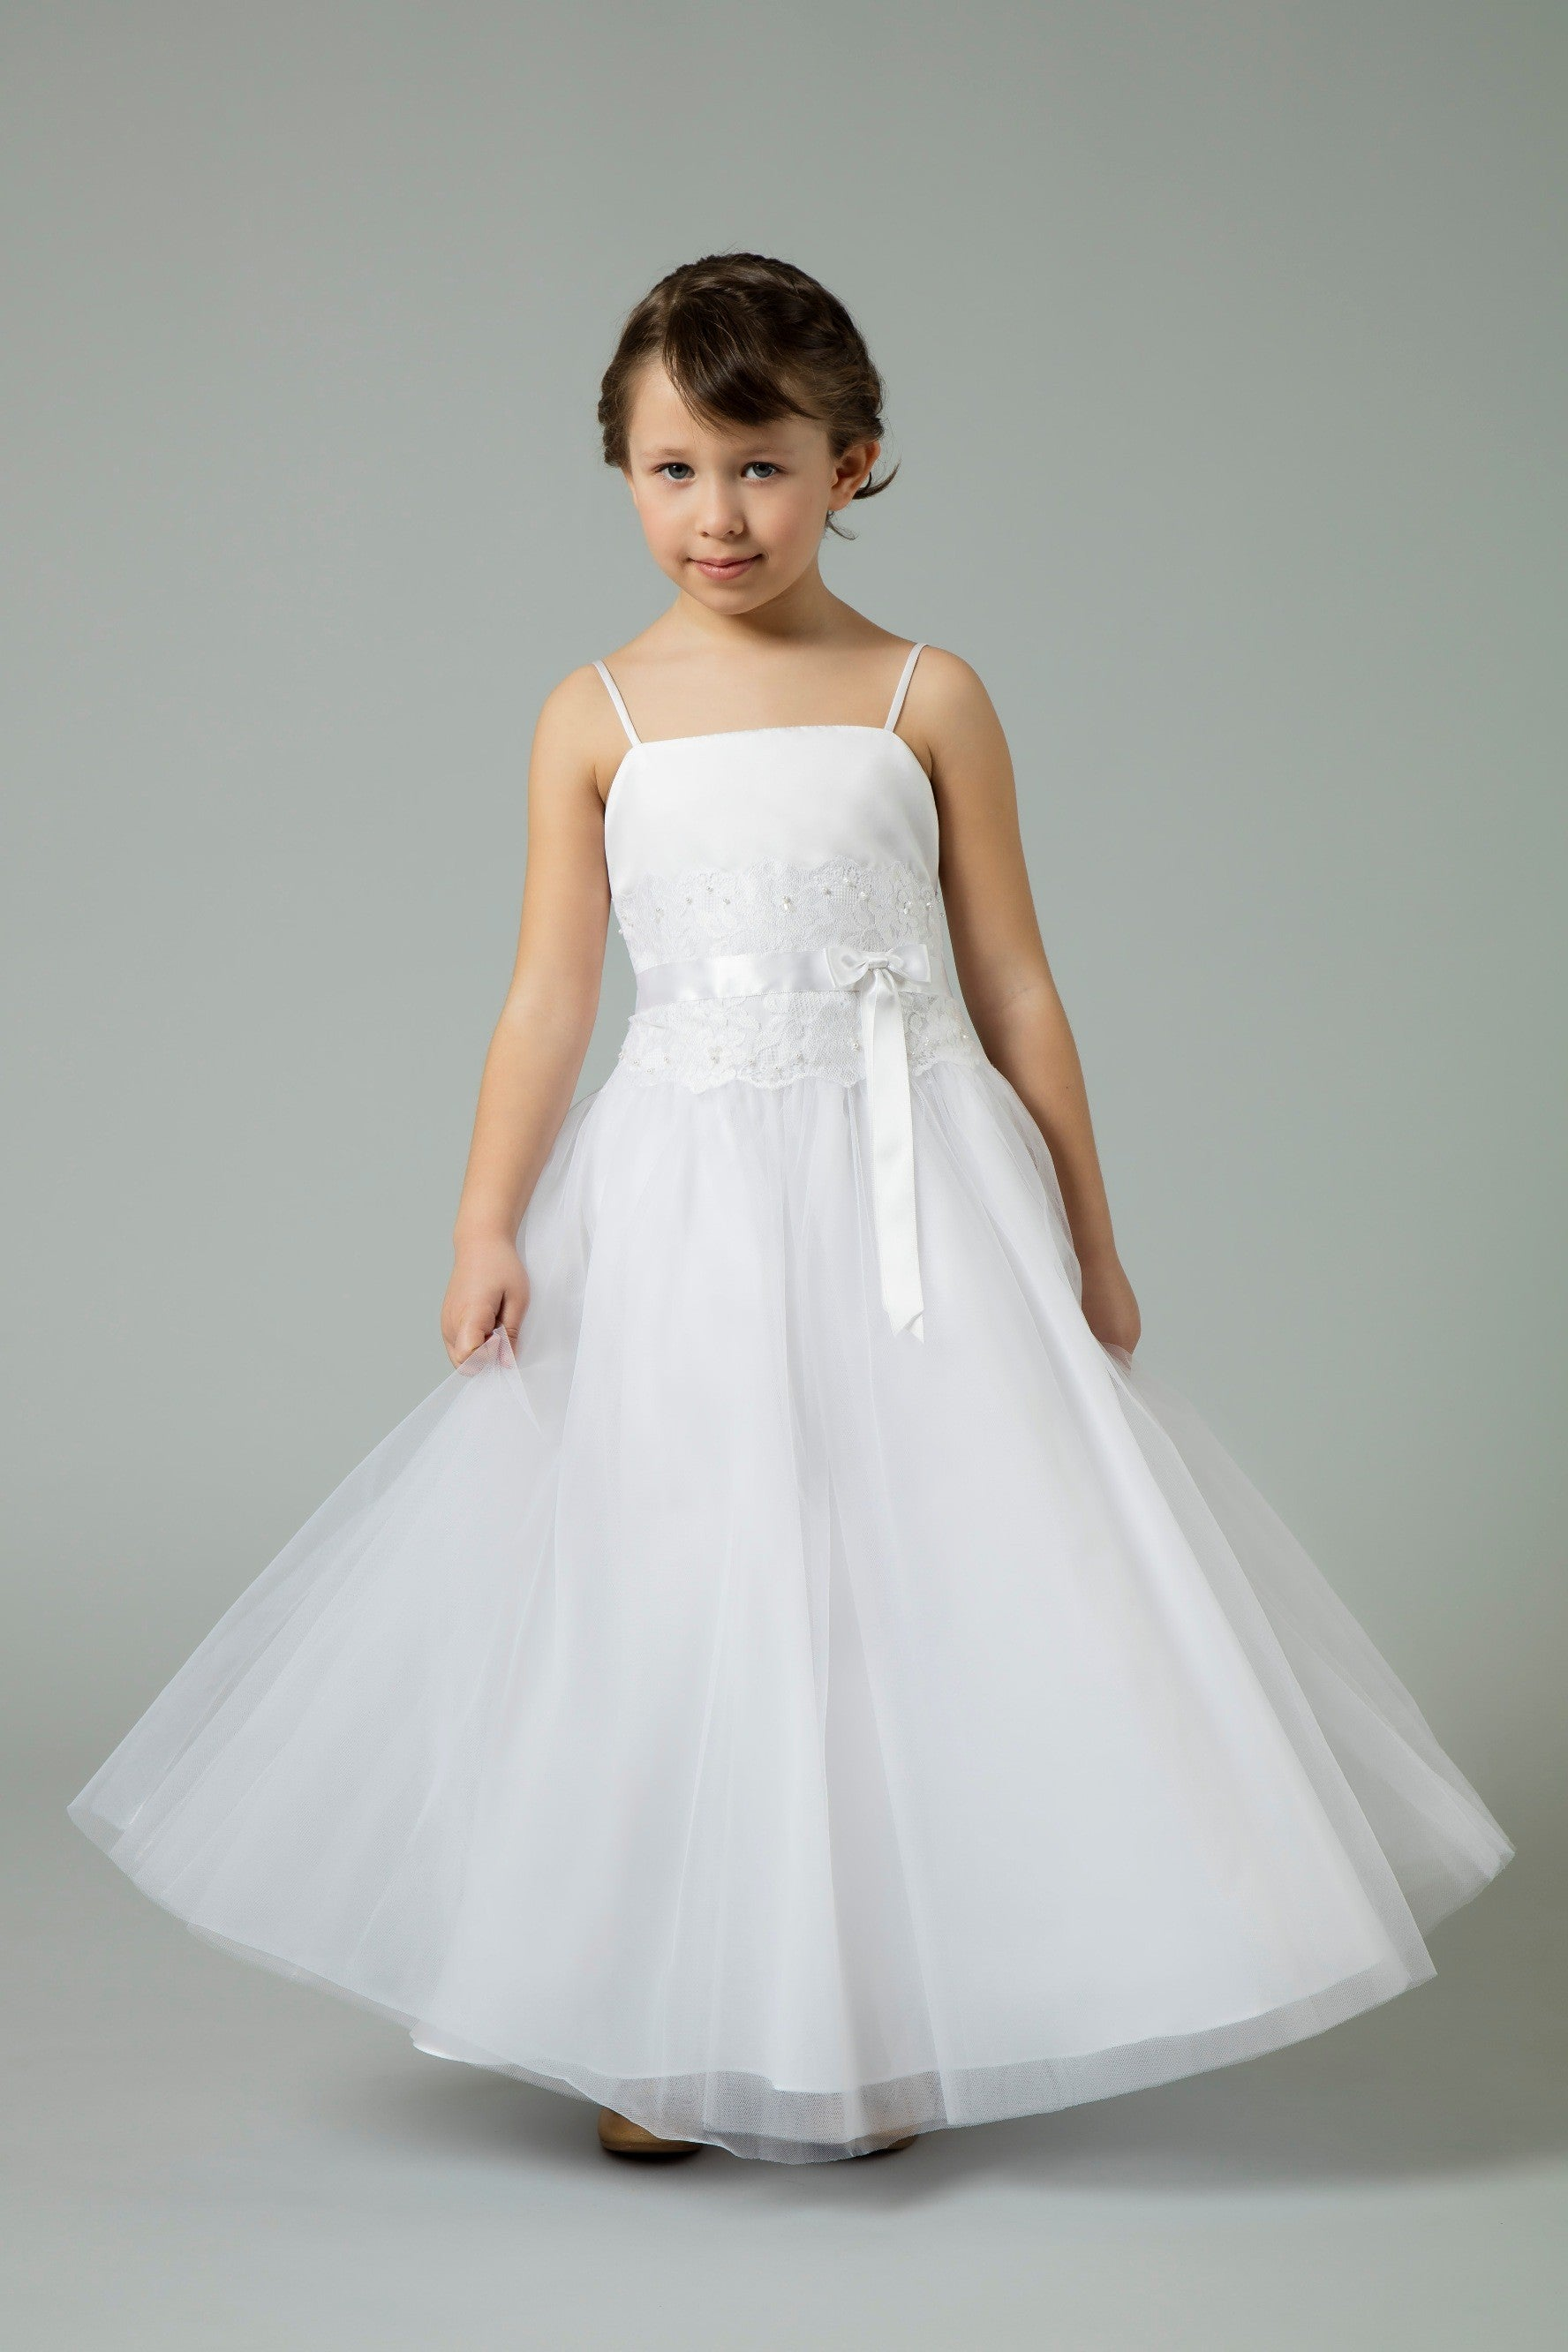 Flower Girl Lace and Tulle Spaghetti Strap Dress-H1173